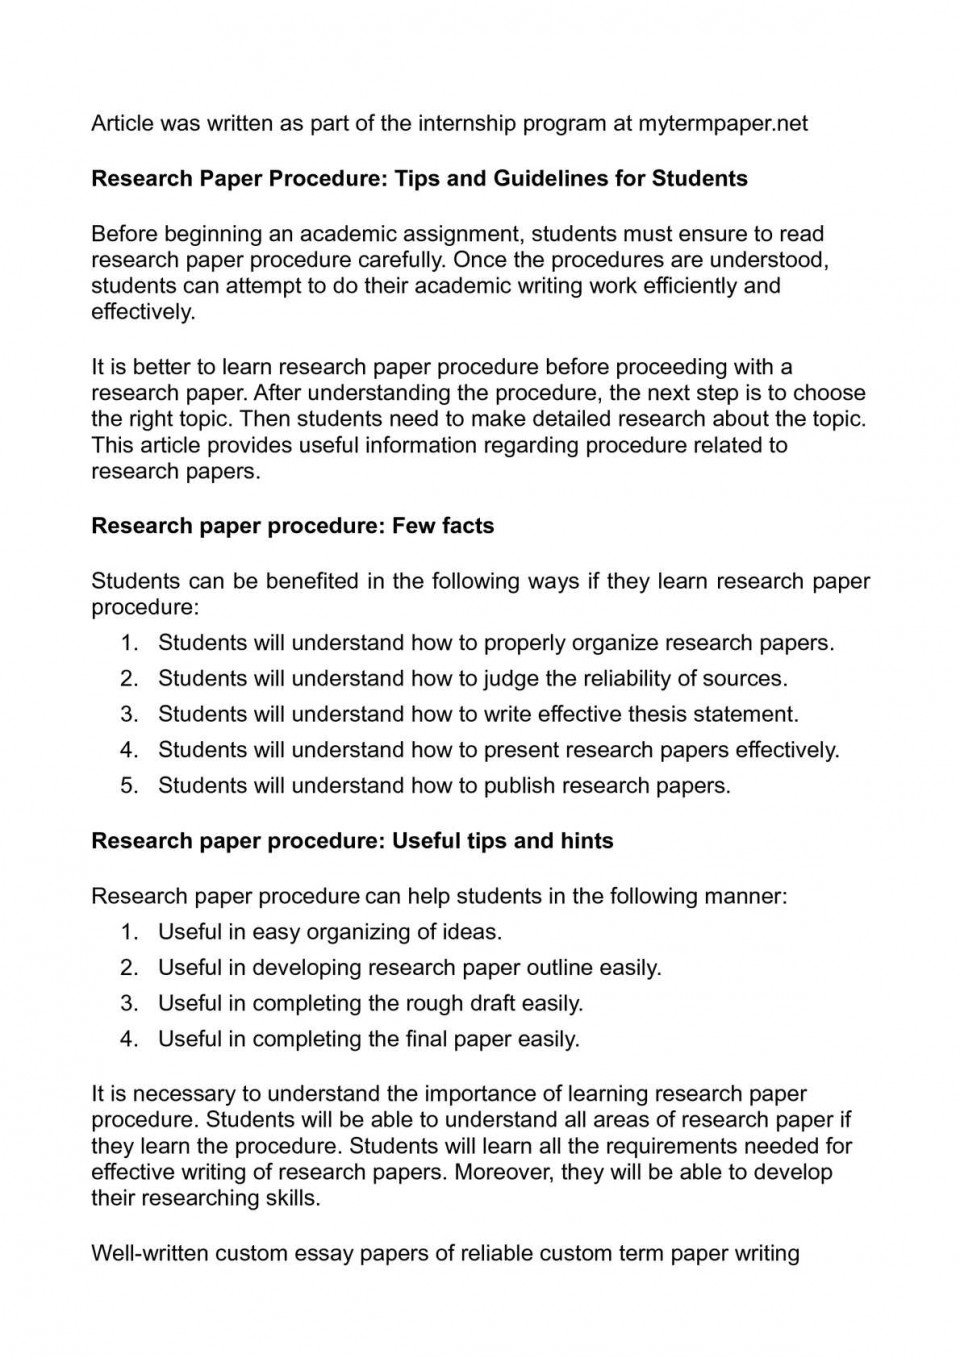 018 How To Do Research Paper Marvelous In Text Citations A Mla Write Introduction Format 960